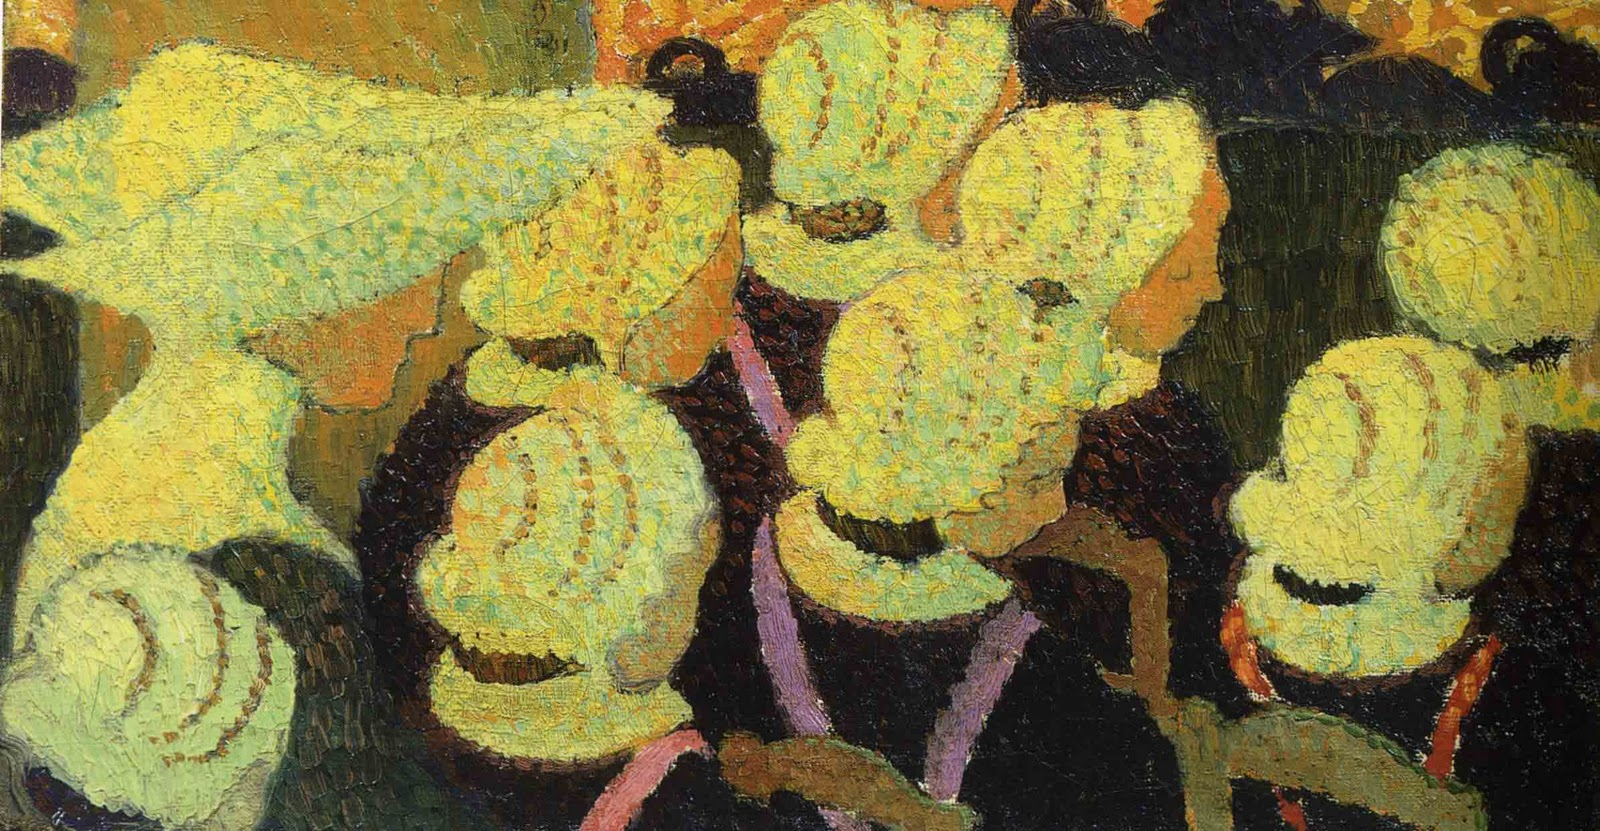 http://4.bp.blogspot.com/_zp6YgZPHXOI/TMww83uAc5I/AAAAAAAAMks/8i9_PcwiN5w/s1600/MauriceDenis+Orphans+1891+private-collection+France.jpg